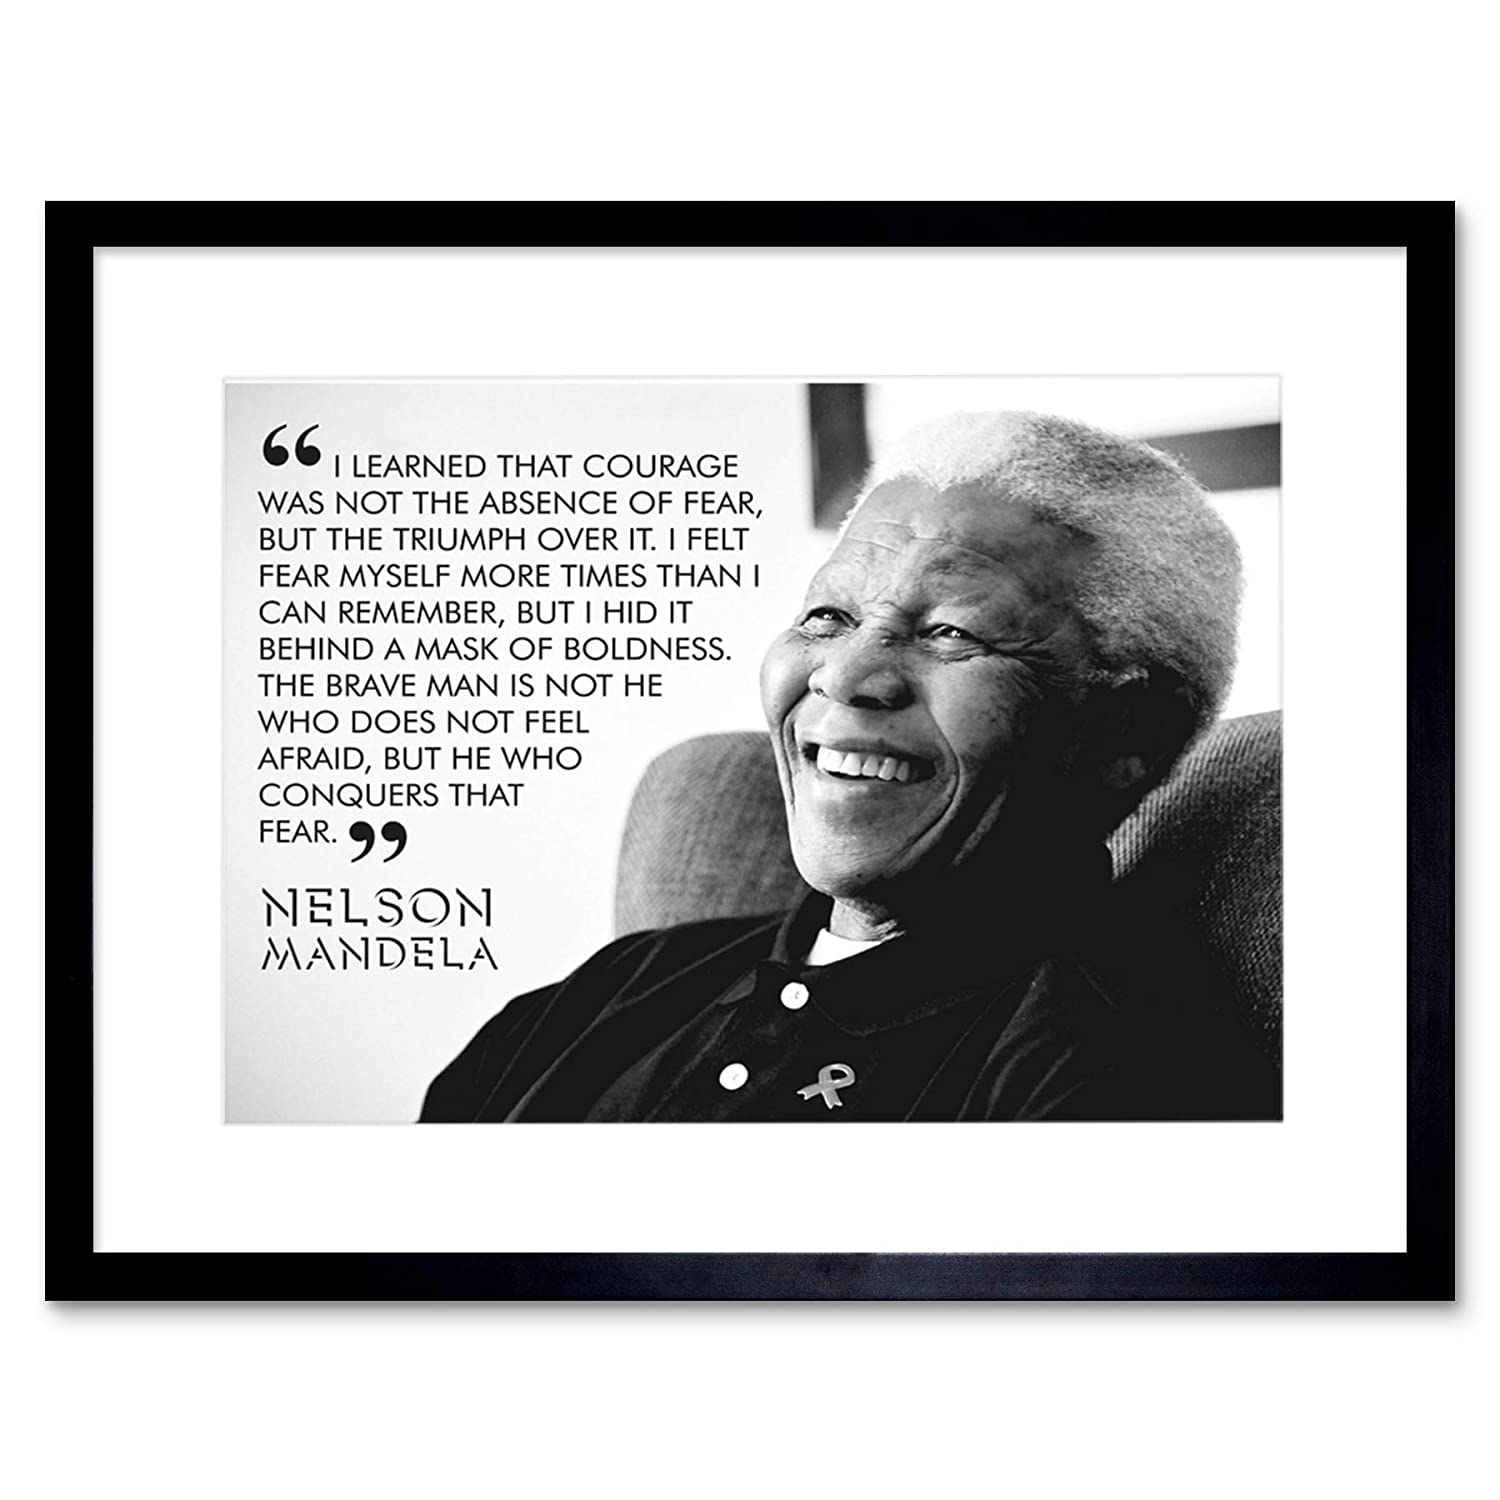 Wee blue coo i learned that courage nelson mandela bw typography quote framed wall art print amazon co uk kitchen home